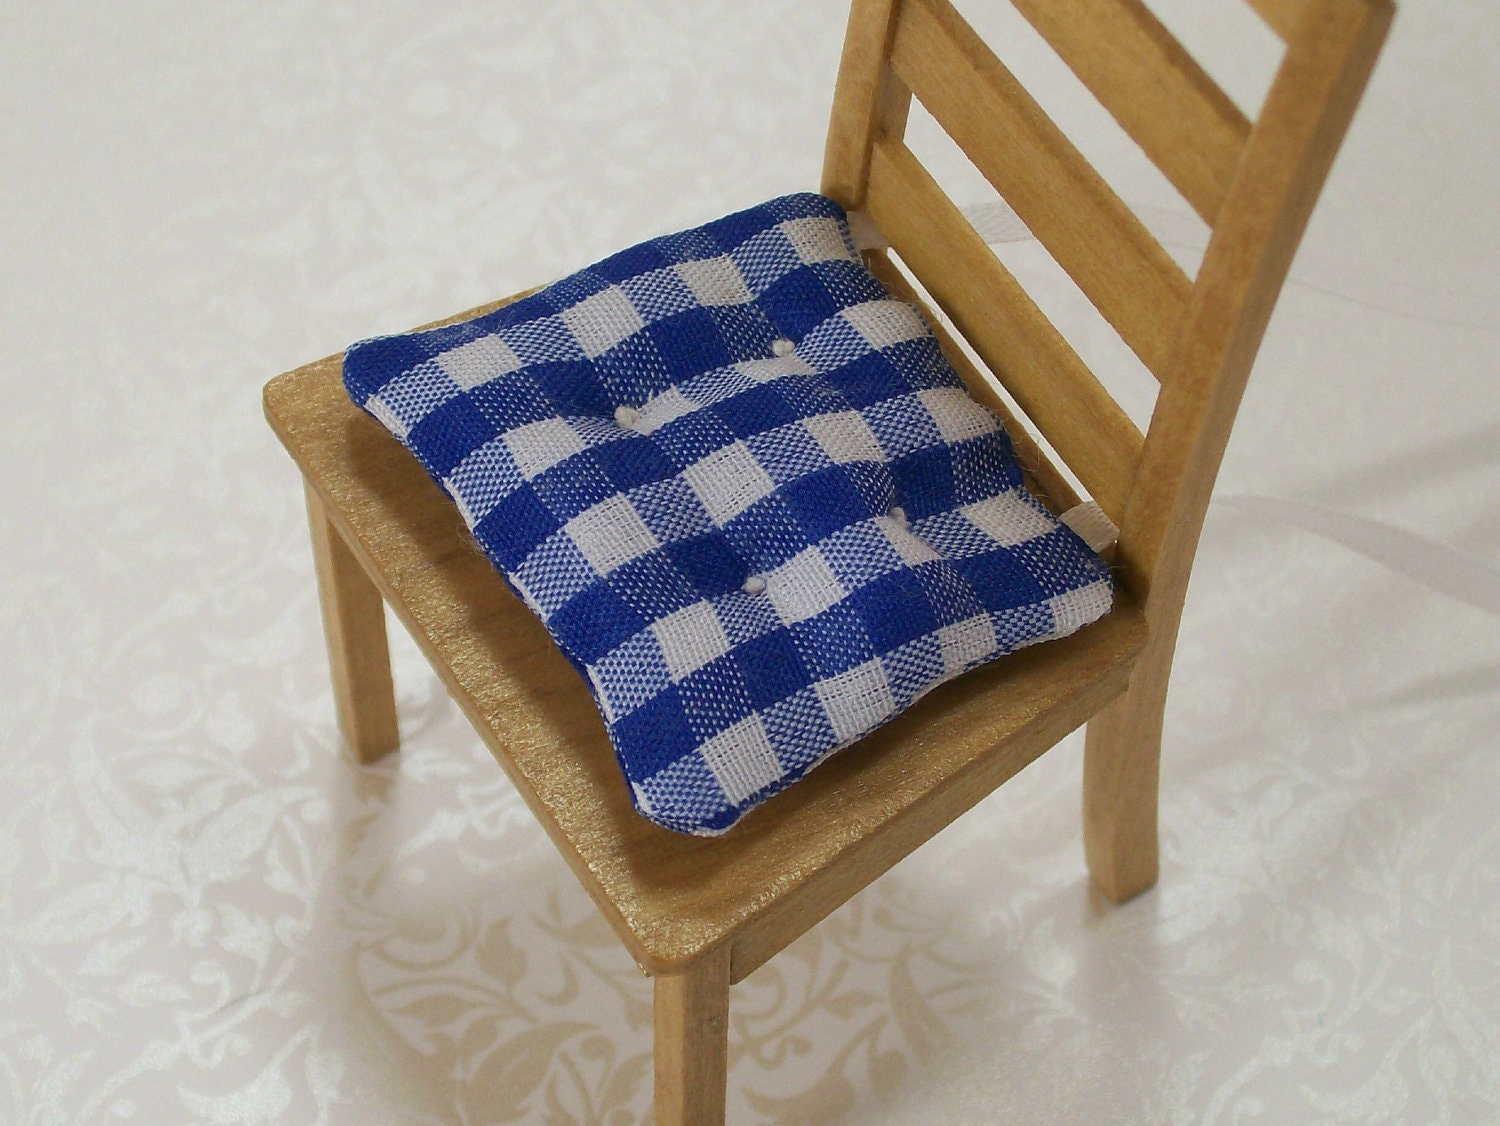 blue white chair cushions gingham kitchen 1 12 dollhouse